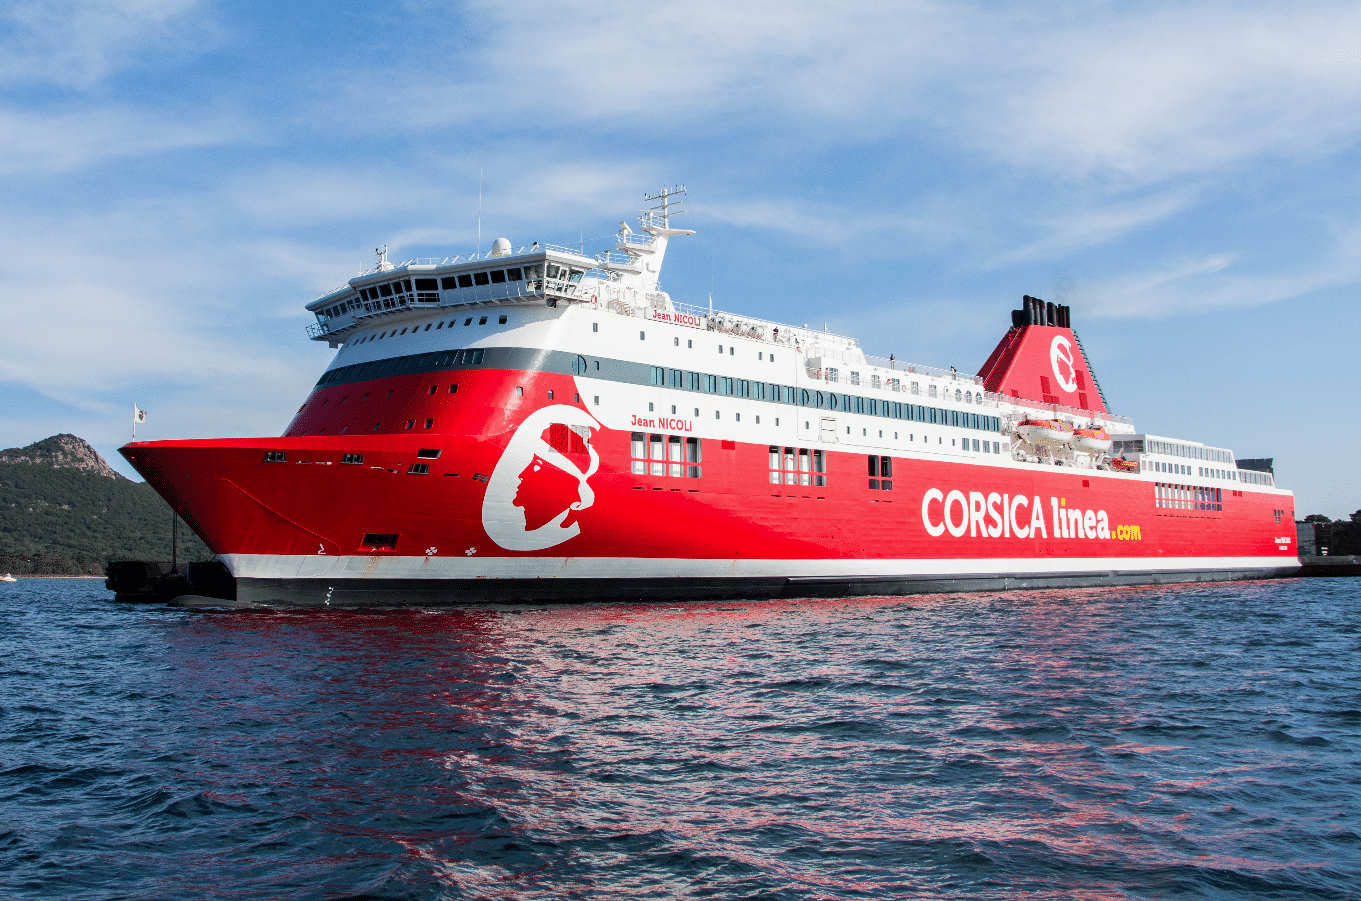 Jean Nicoli Corsica Lines set installation of scrubbers at Ship repair yard at Palumbo